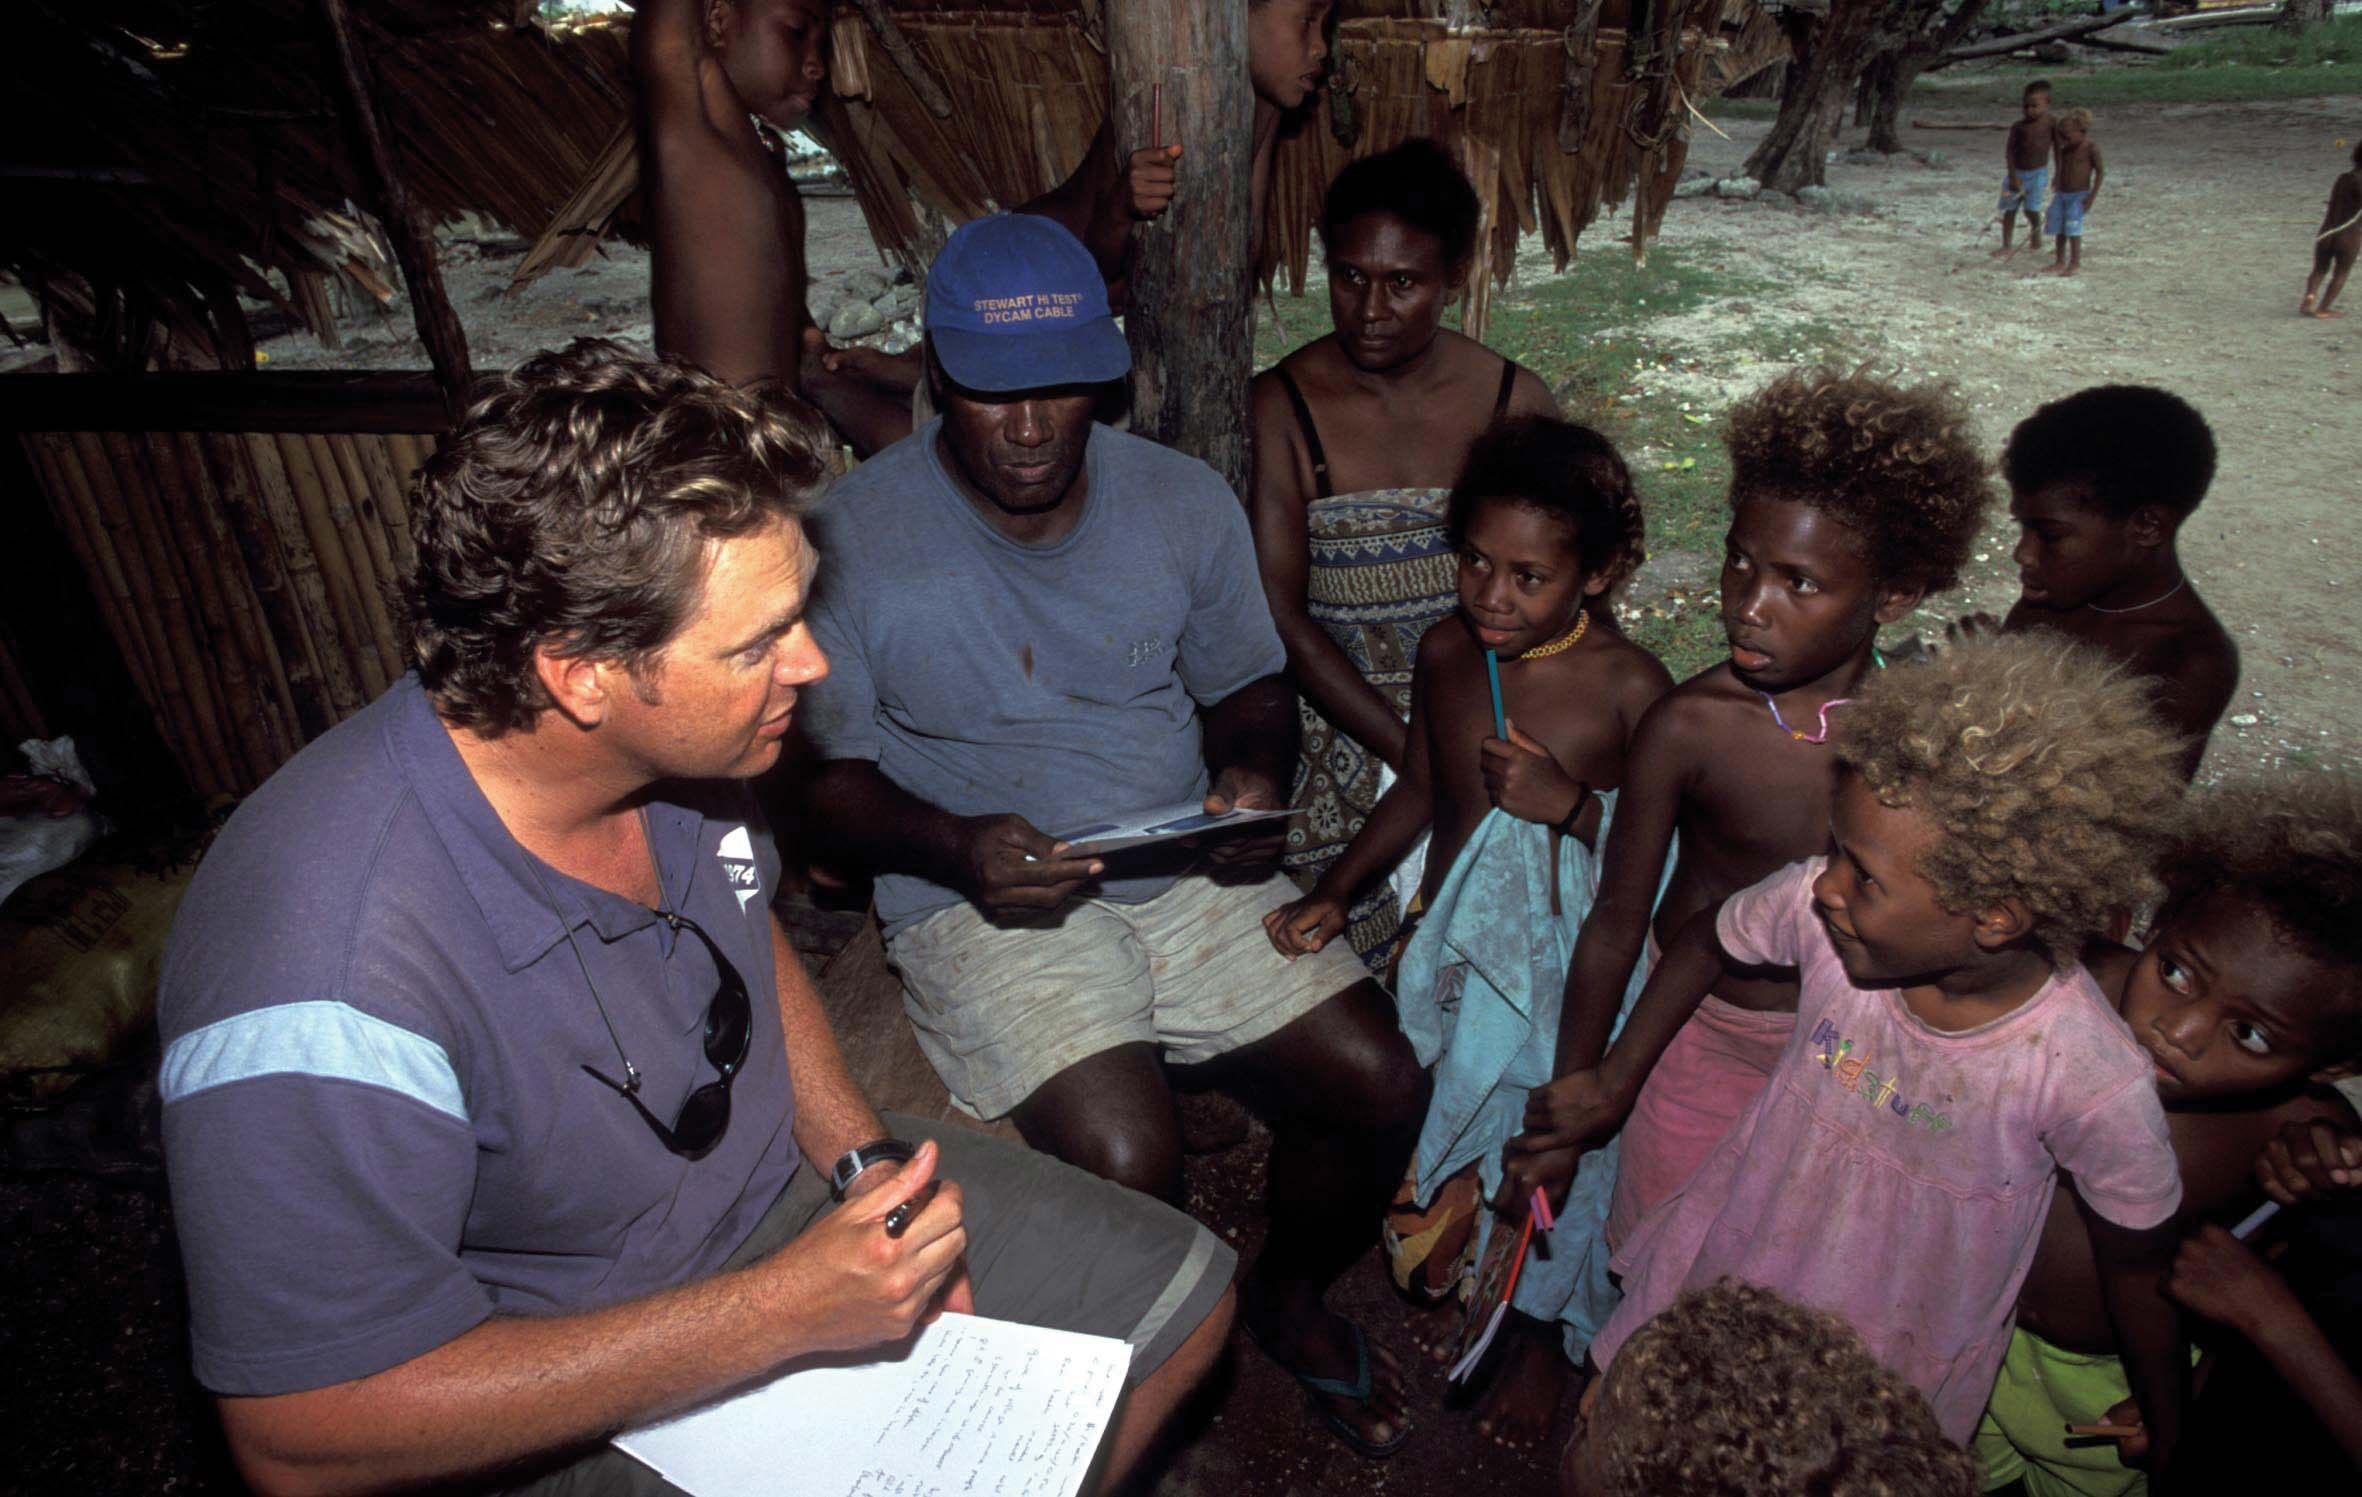 Gathering community support for conservation projects on the island of Malaita in the Solomon Islands, cetacean biologist Benjamin Kahn speaks to community members of Fanalei Village about local marine life. © DAVID WACHENFELD / TRIGGERFISH IMAGES